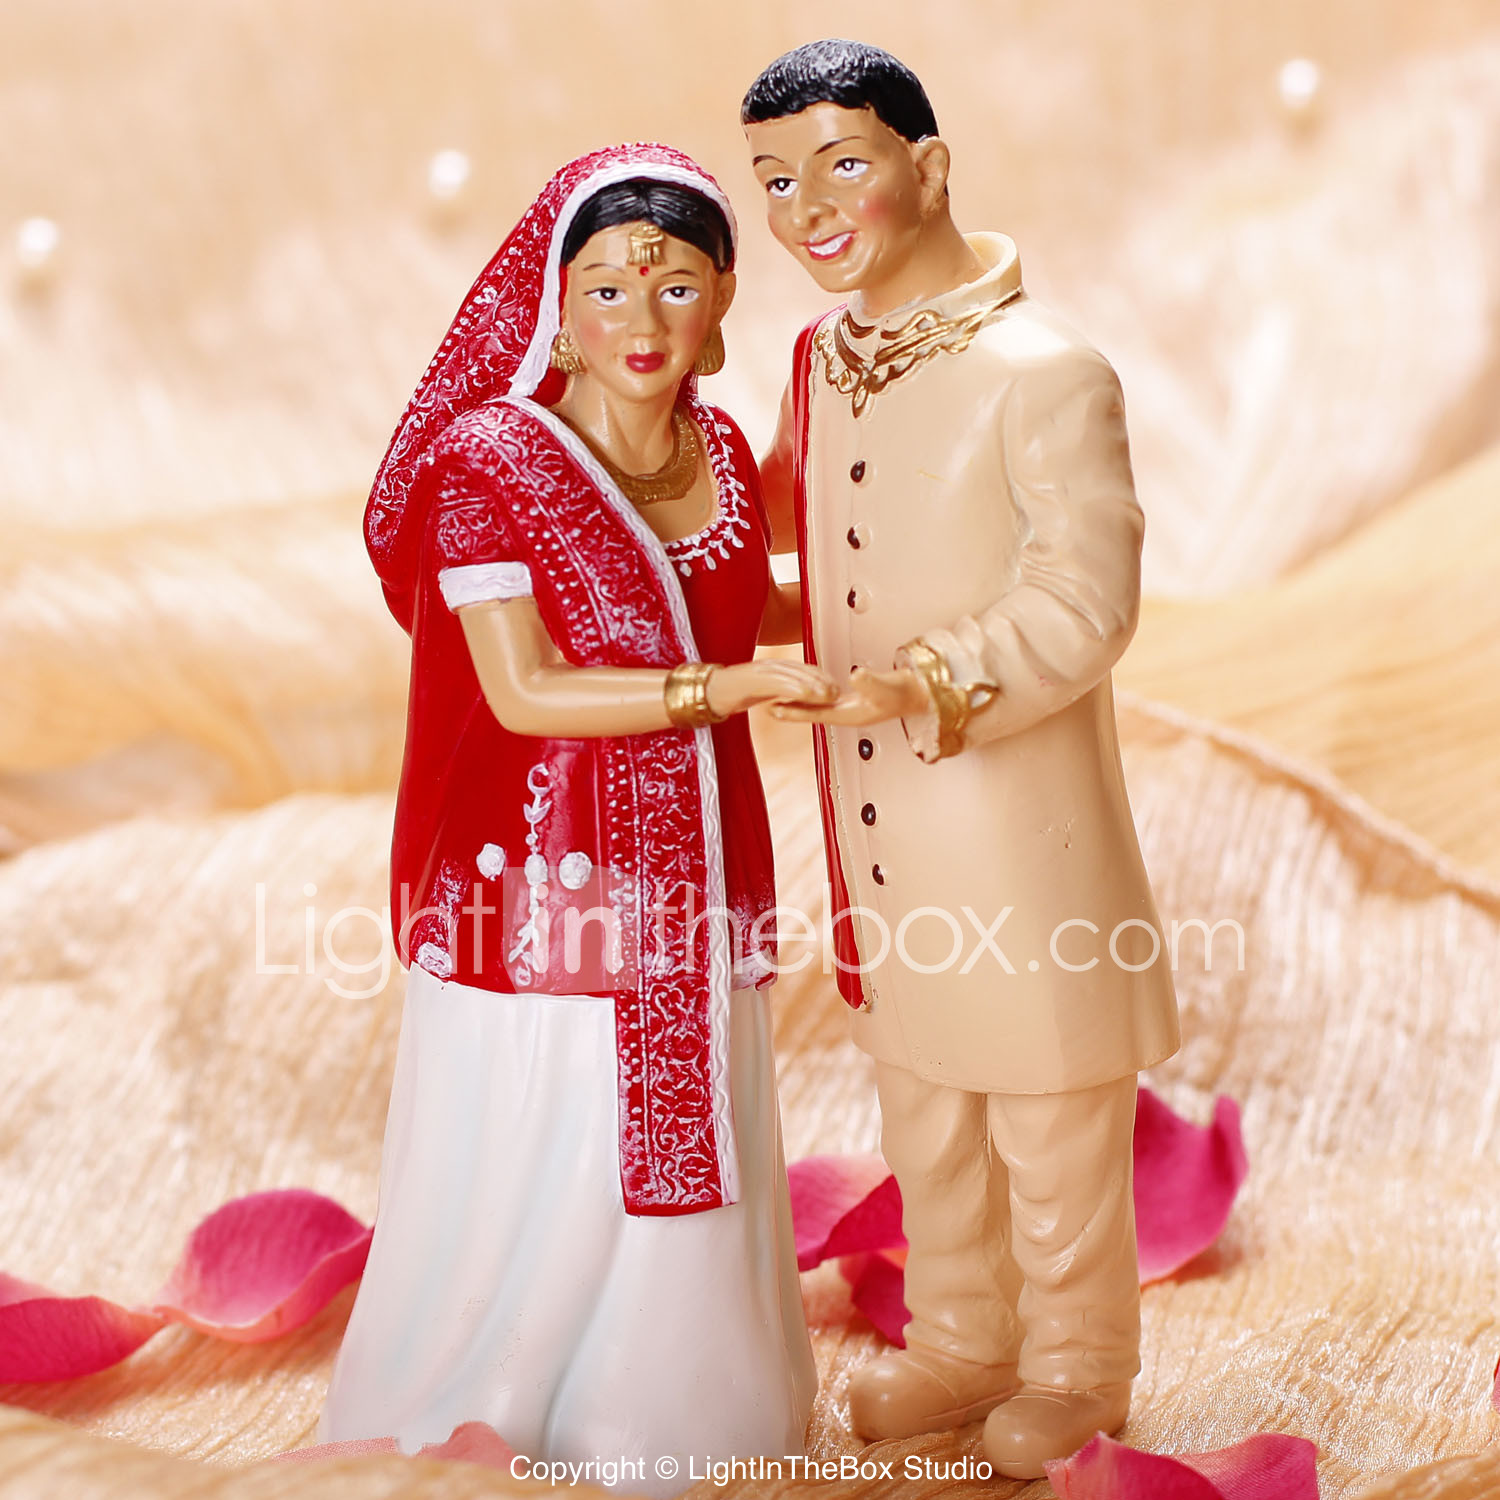 Cake Toppers India Style Bride & Groom Cake Topper 474497 2018 – $10.99